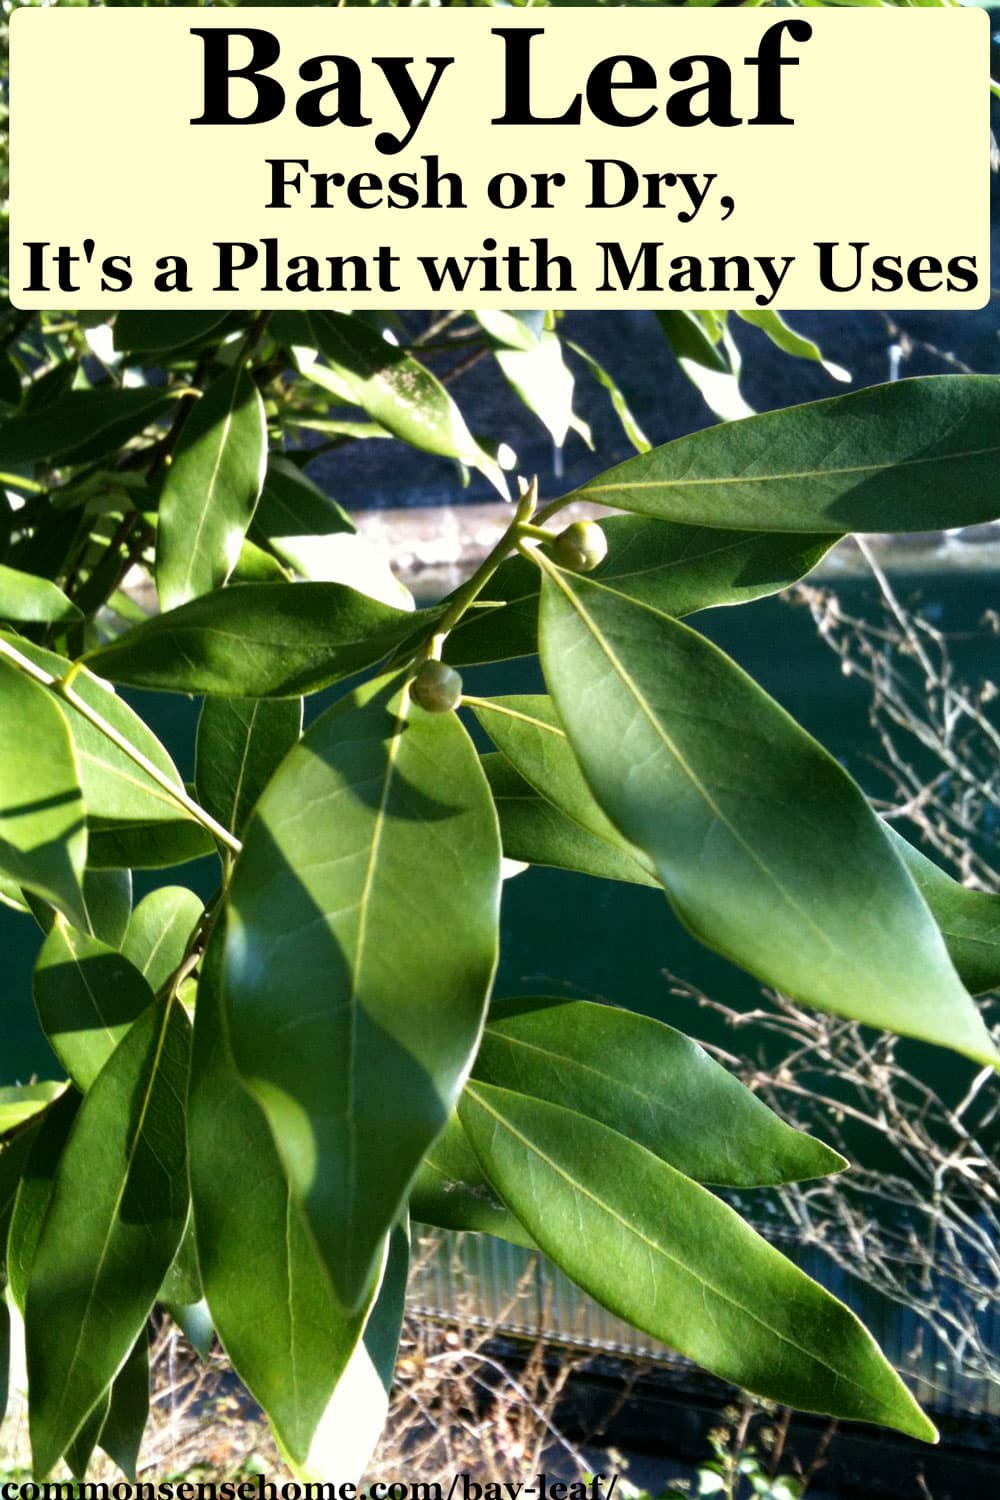 Bay Leaf - Fresh or Dry, It's a Plant with Many Uses